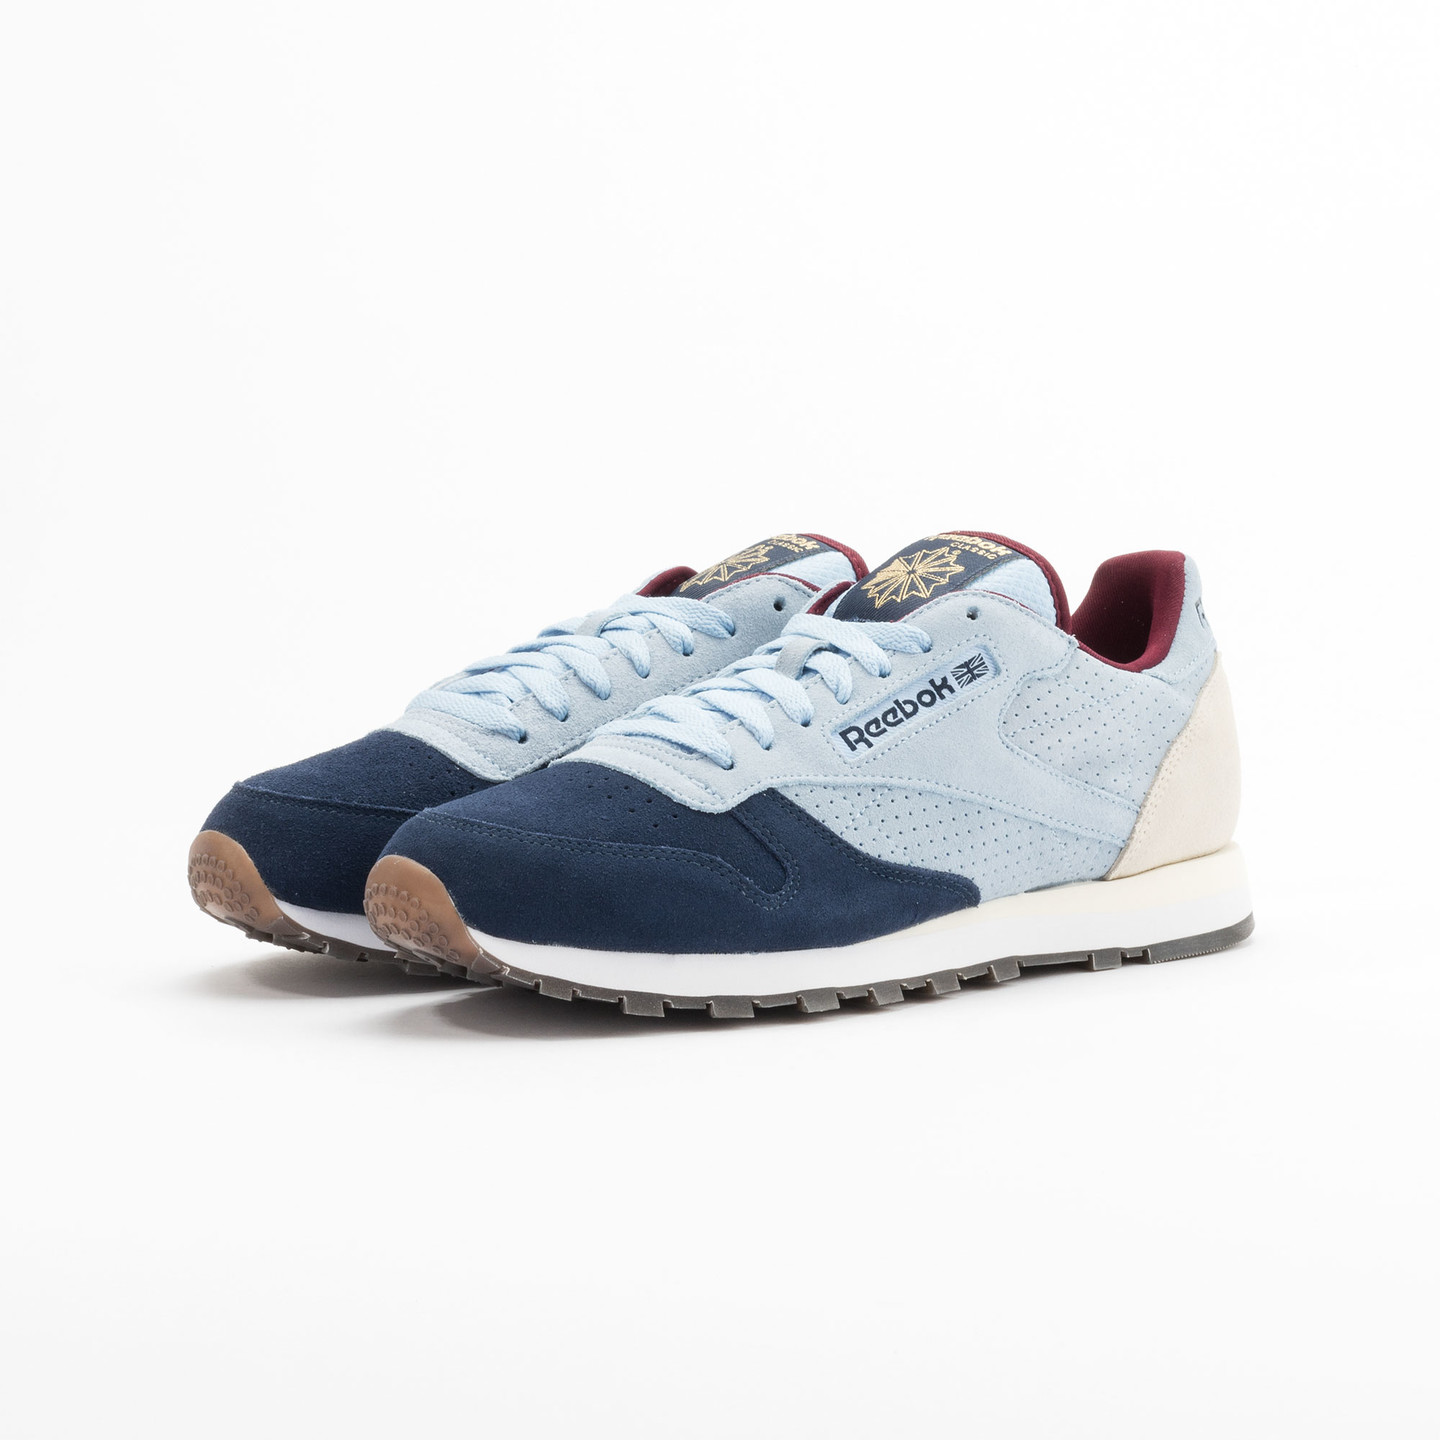 Reebok Classic Leather Int Navy / Light Blue / Sand V66829-42